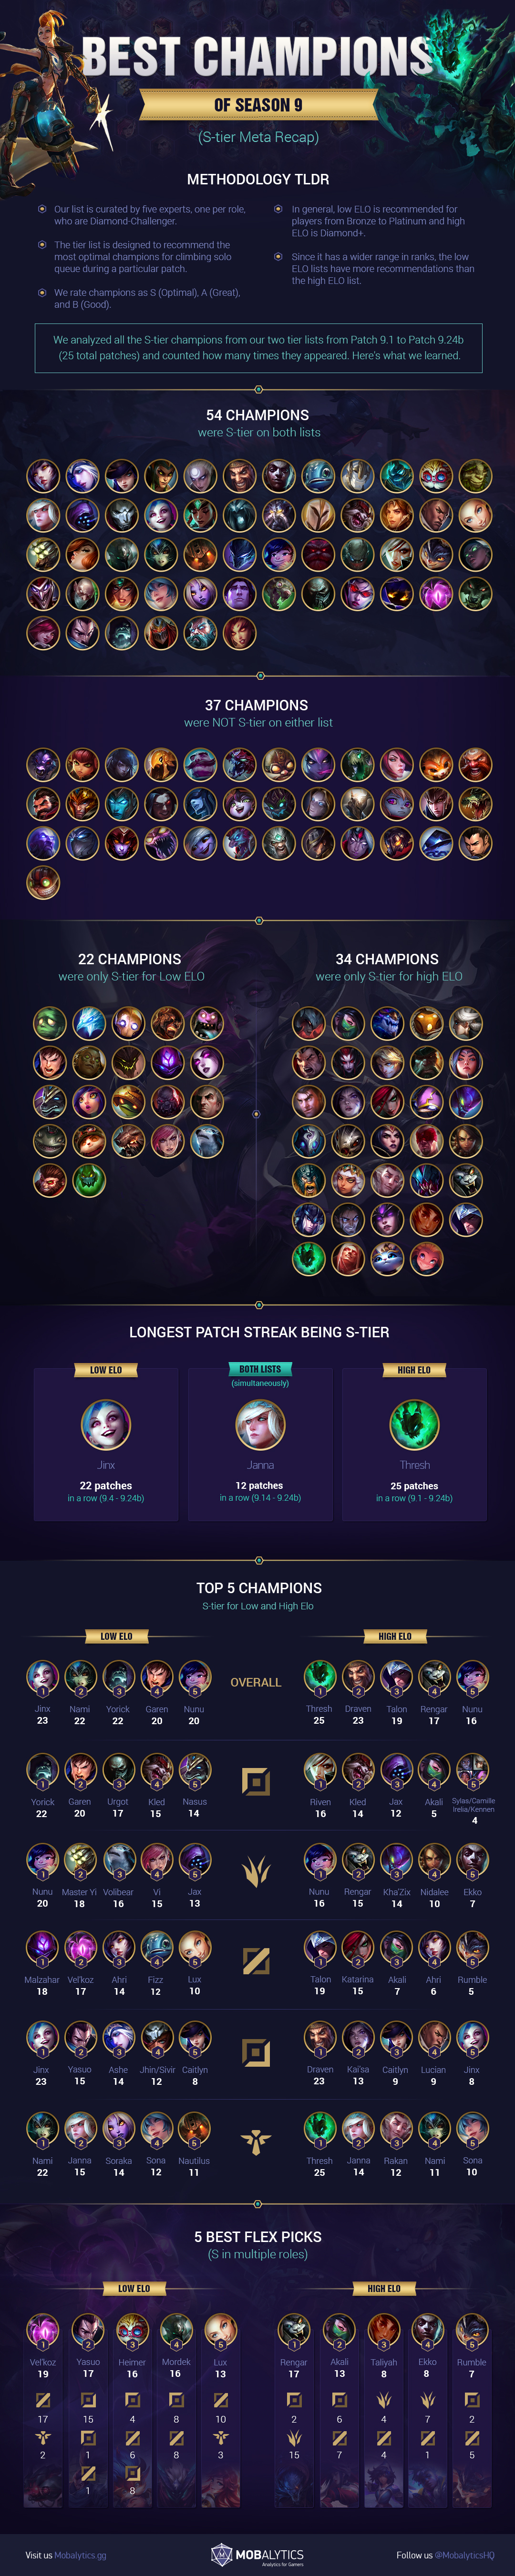 Best Champions of Season 9 Infographic